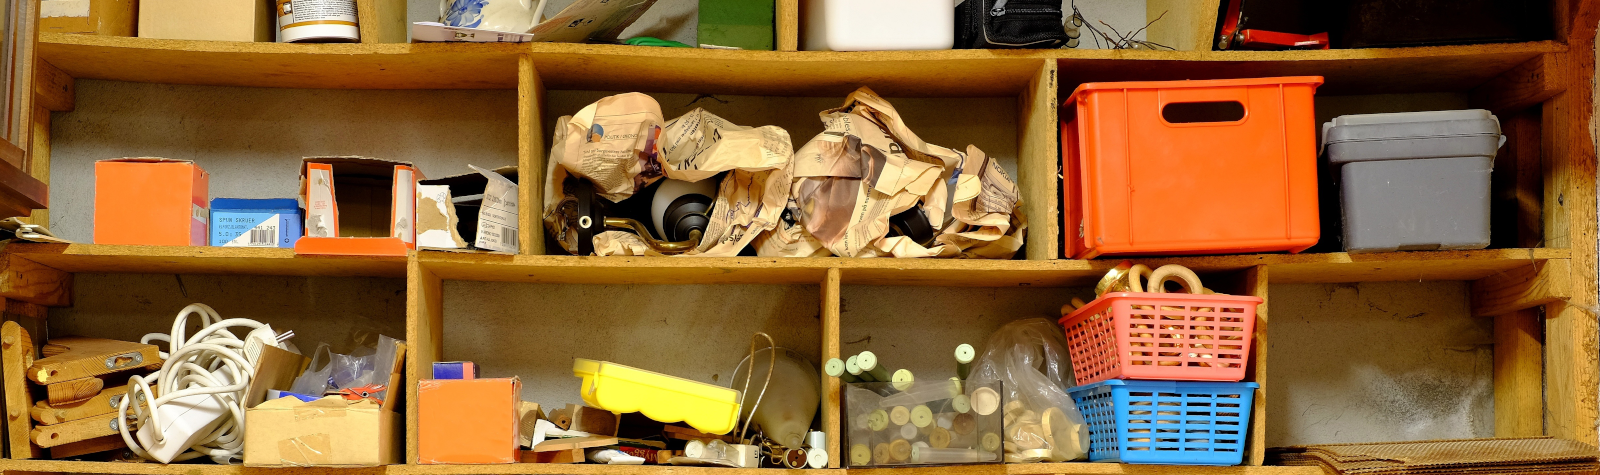 Supply Closet Restocking – How to Stay Organized at Work